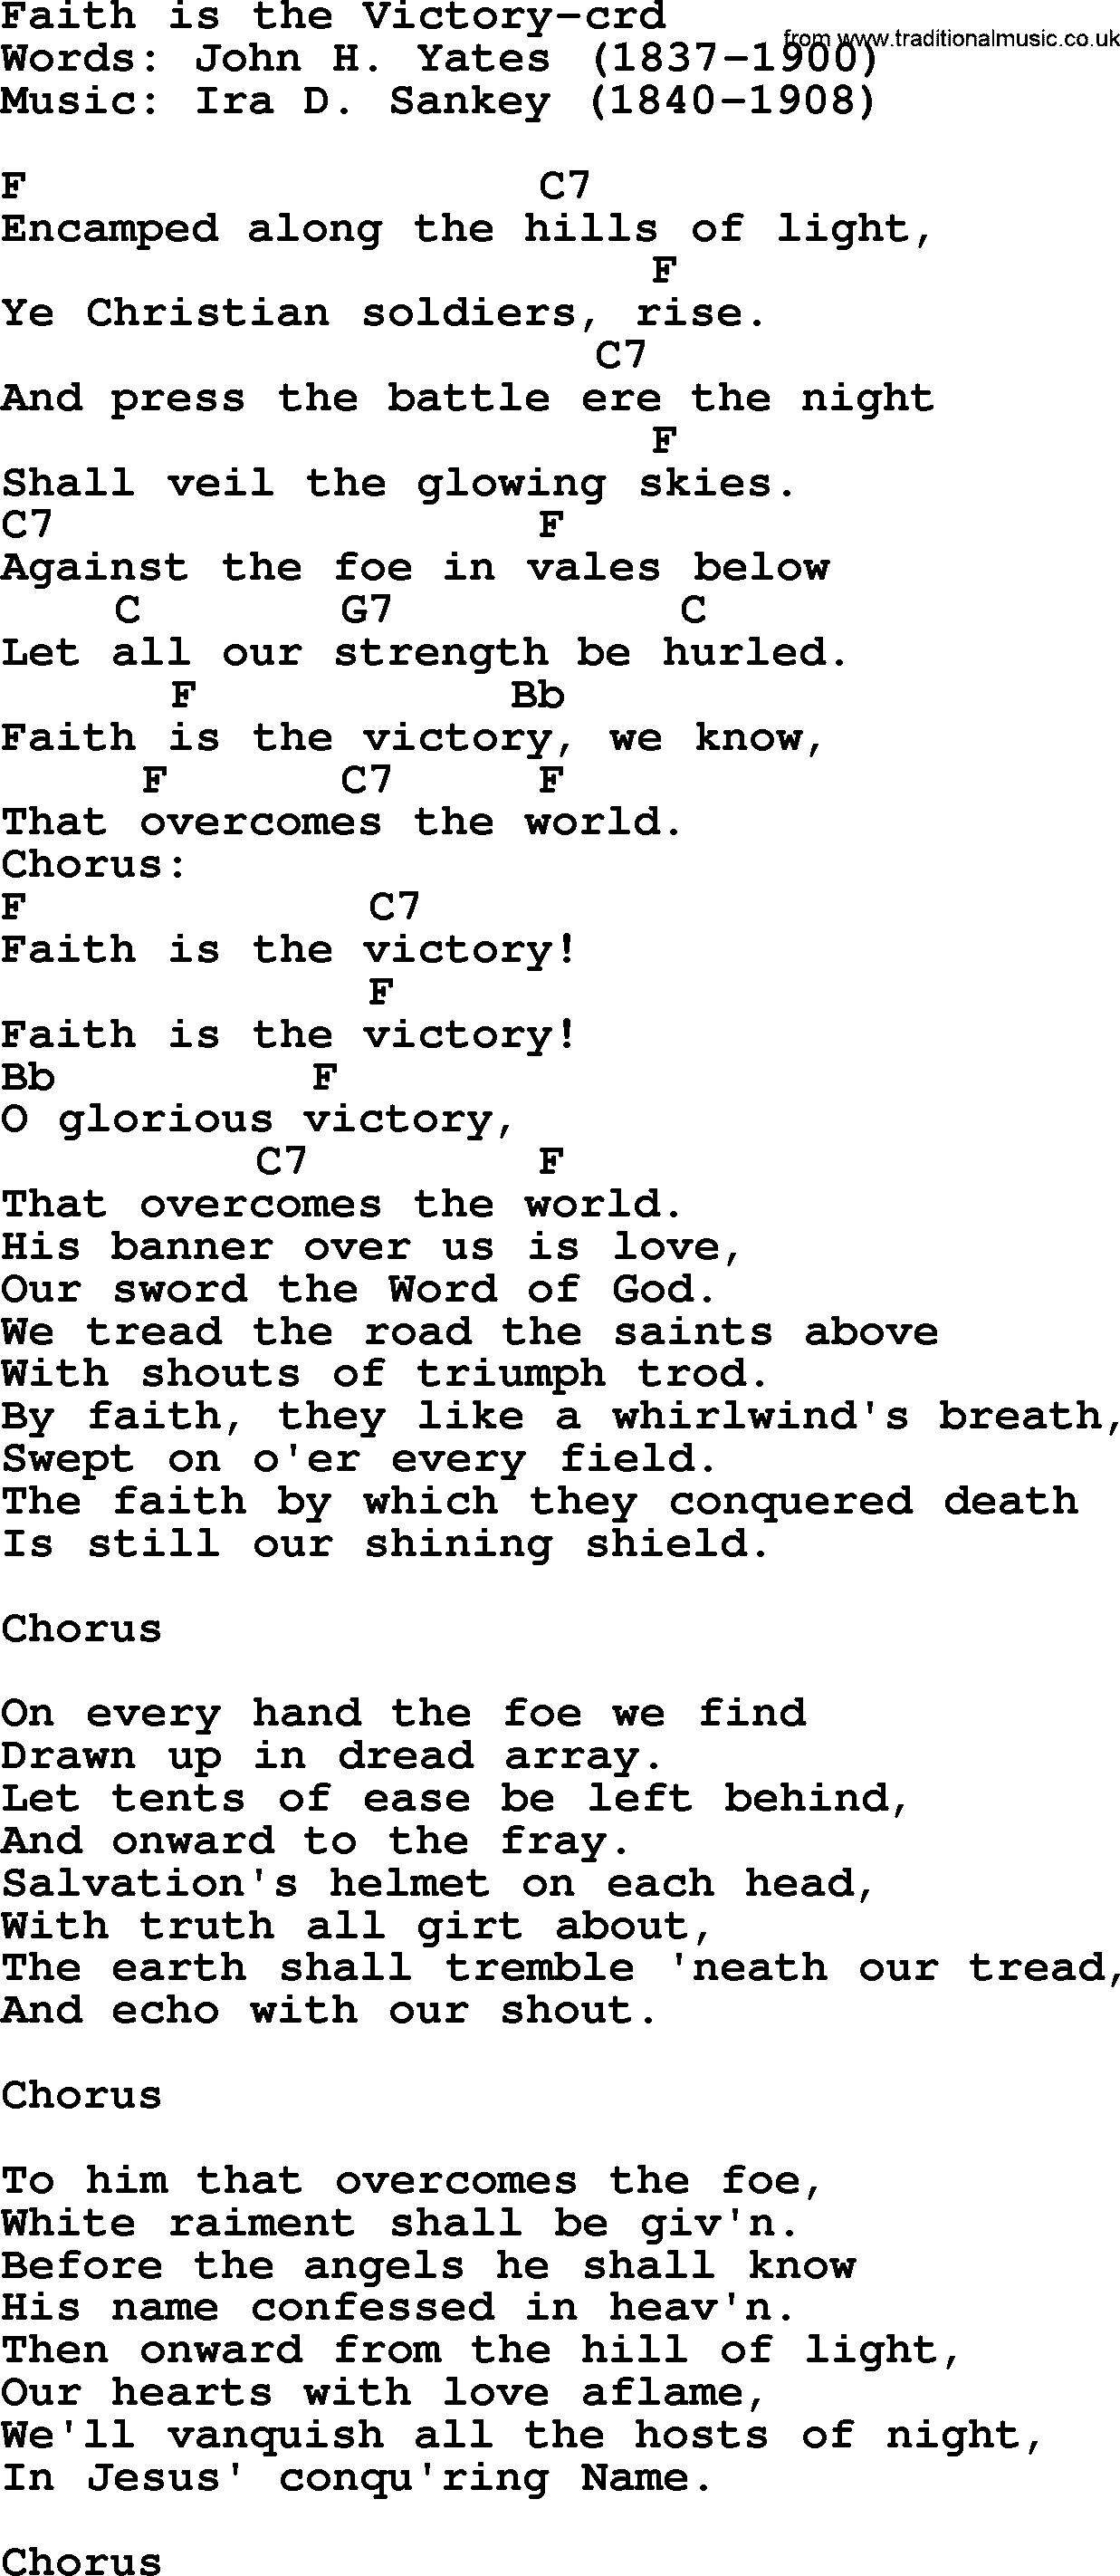 Christian victory songs list